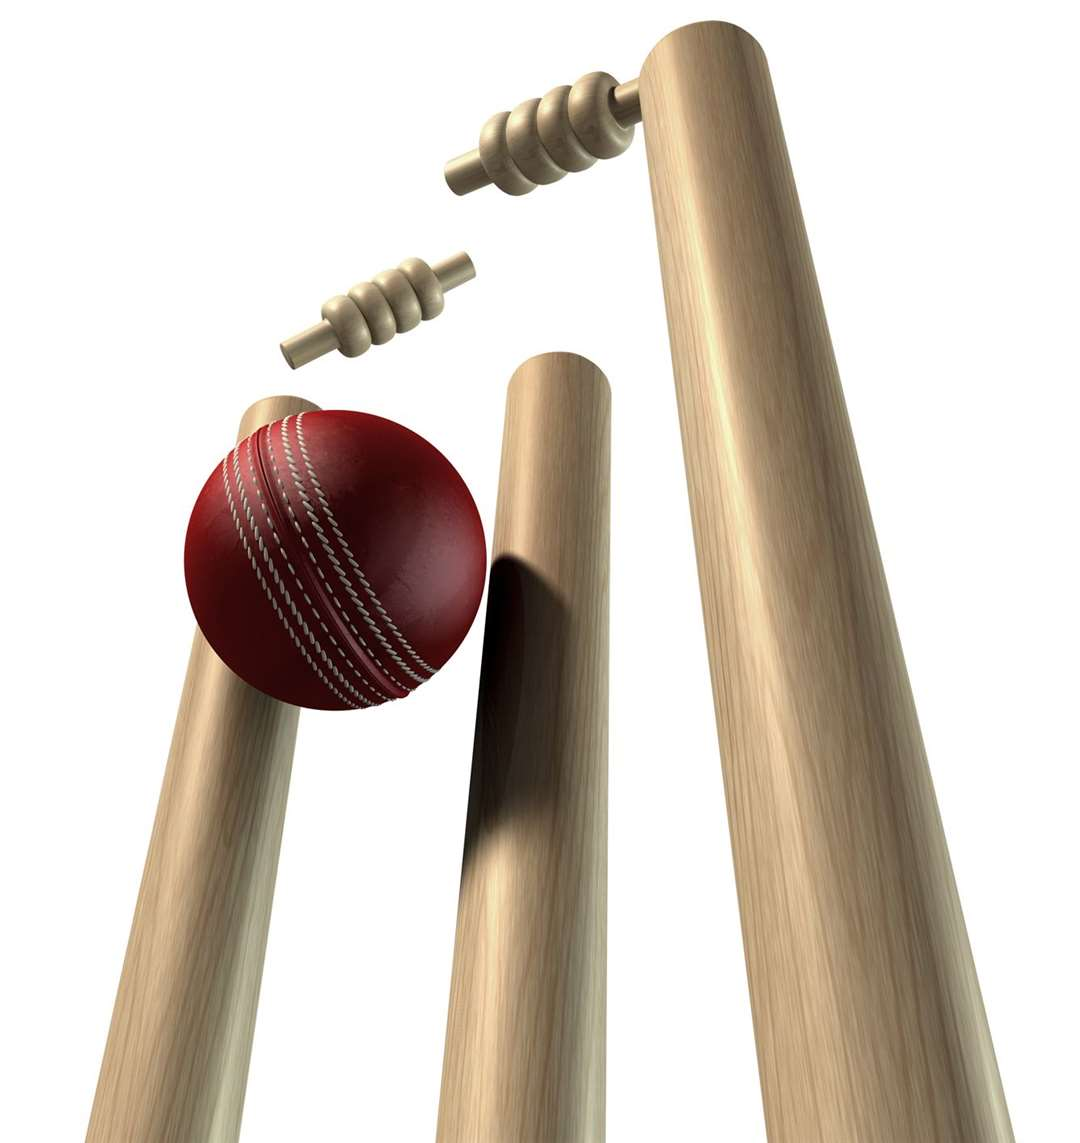 Cricket Ball Hitting Wickets Perspective Isolated. (14838278)